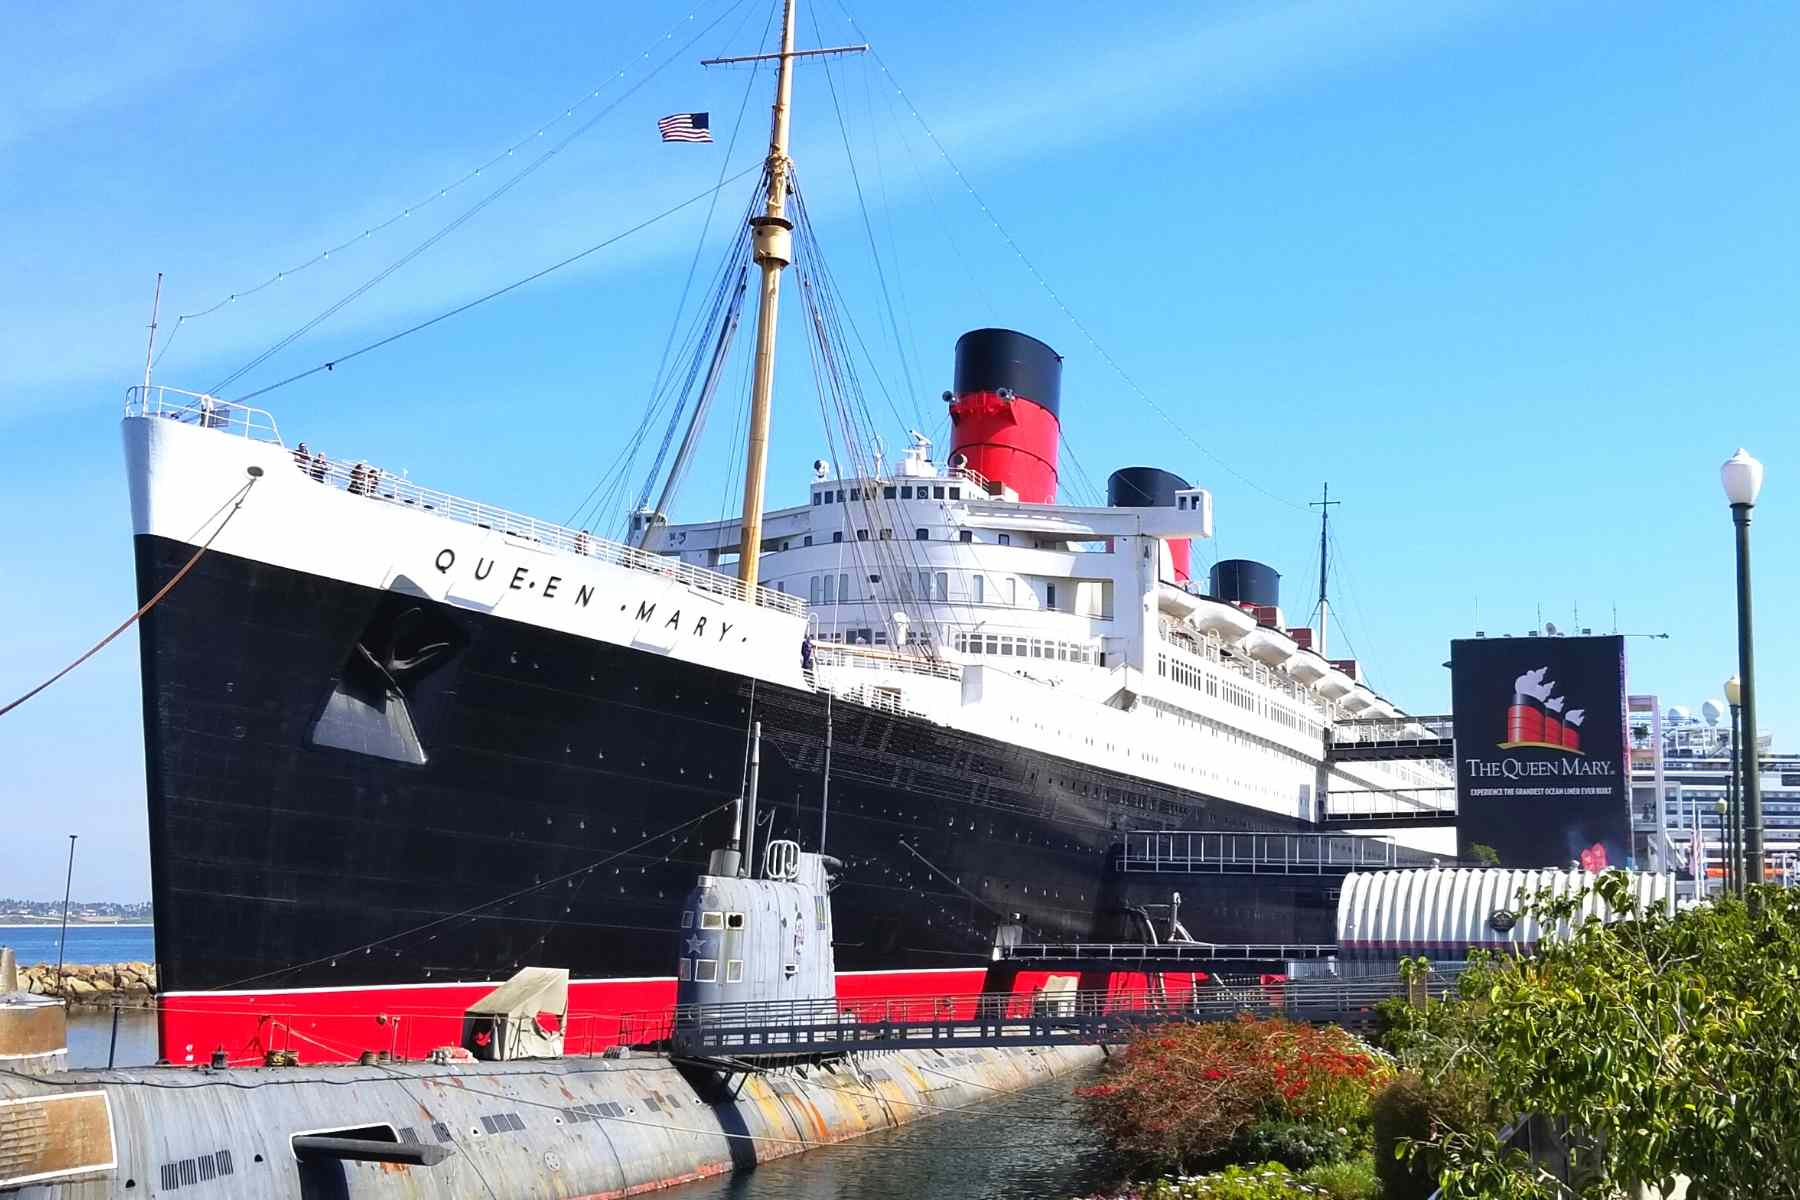 Queen Mary Hotel in Long Beach